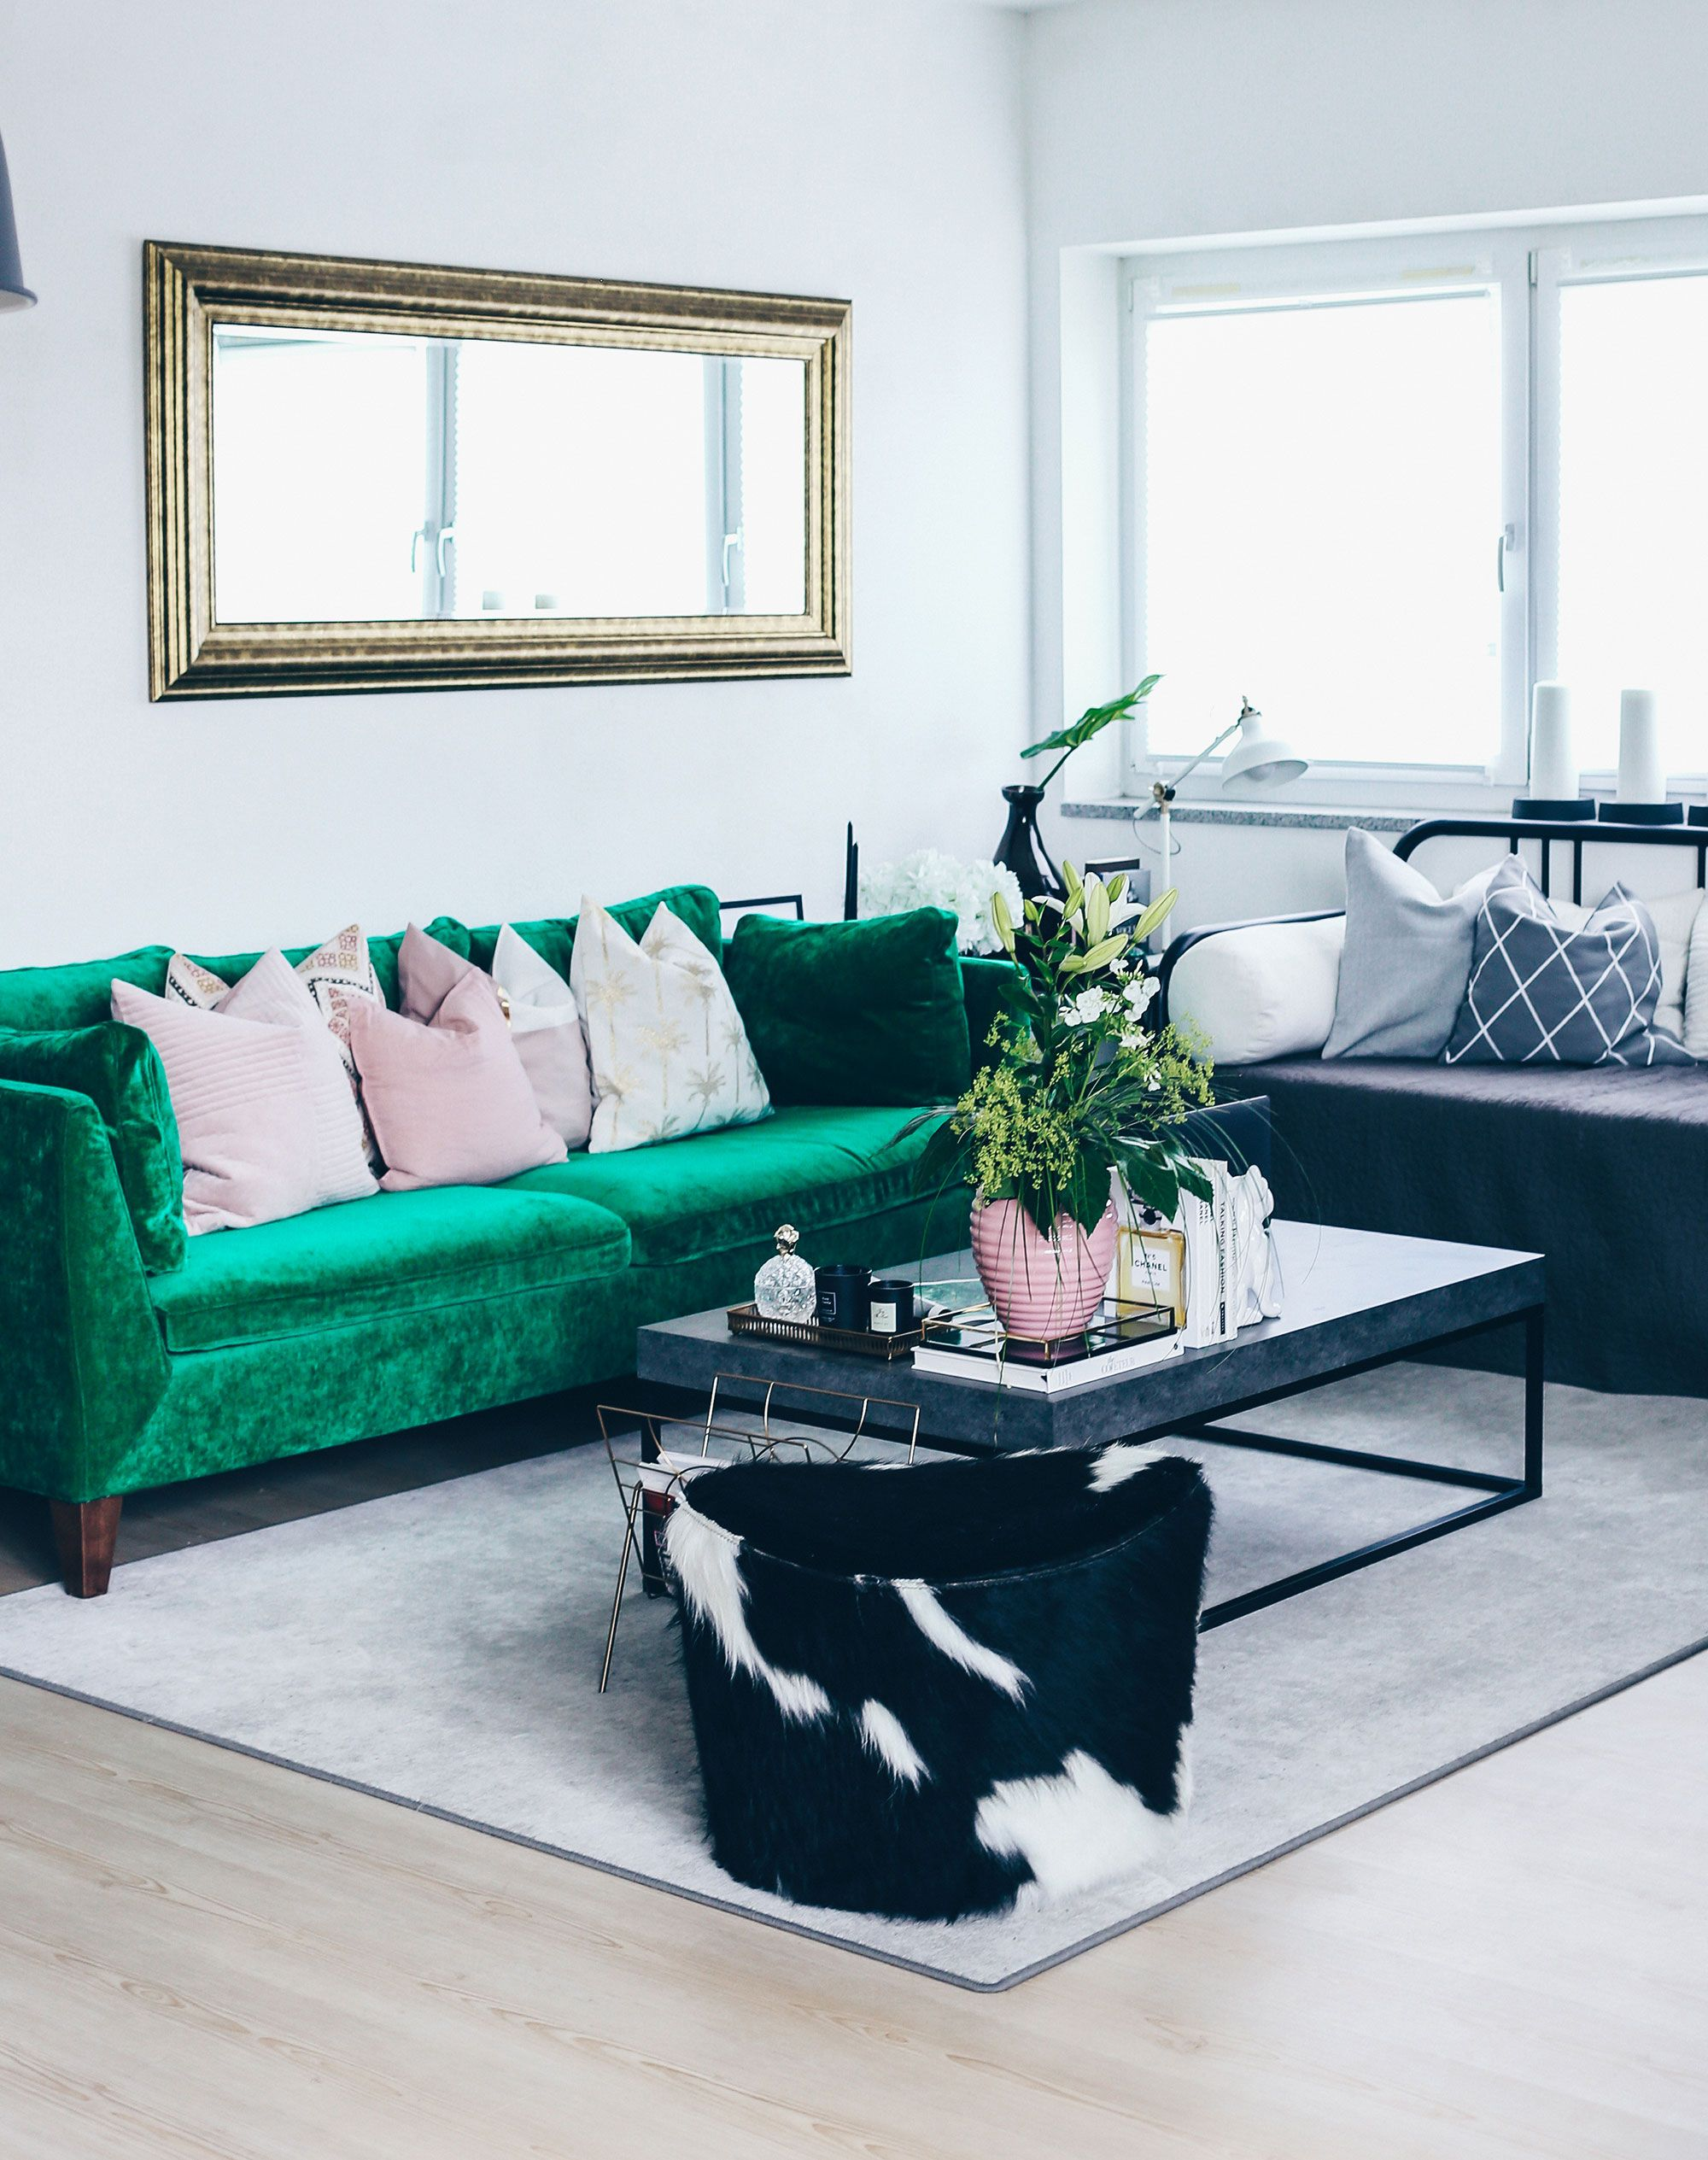 Emerald Green Sofa Covers Clean Leather With Baking Soda Stockholm Cover 3 Seater In 2019 39s Andchairs